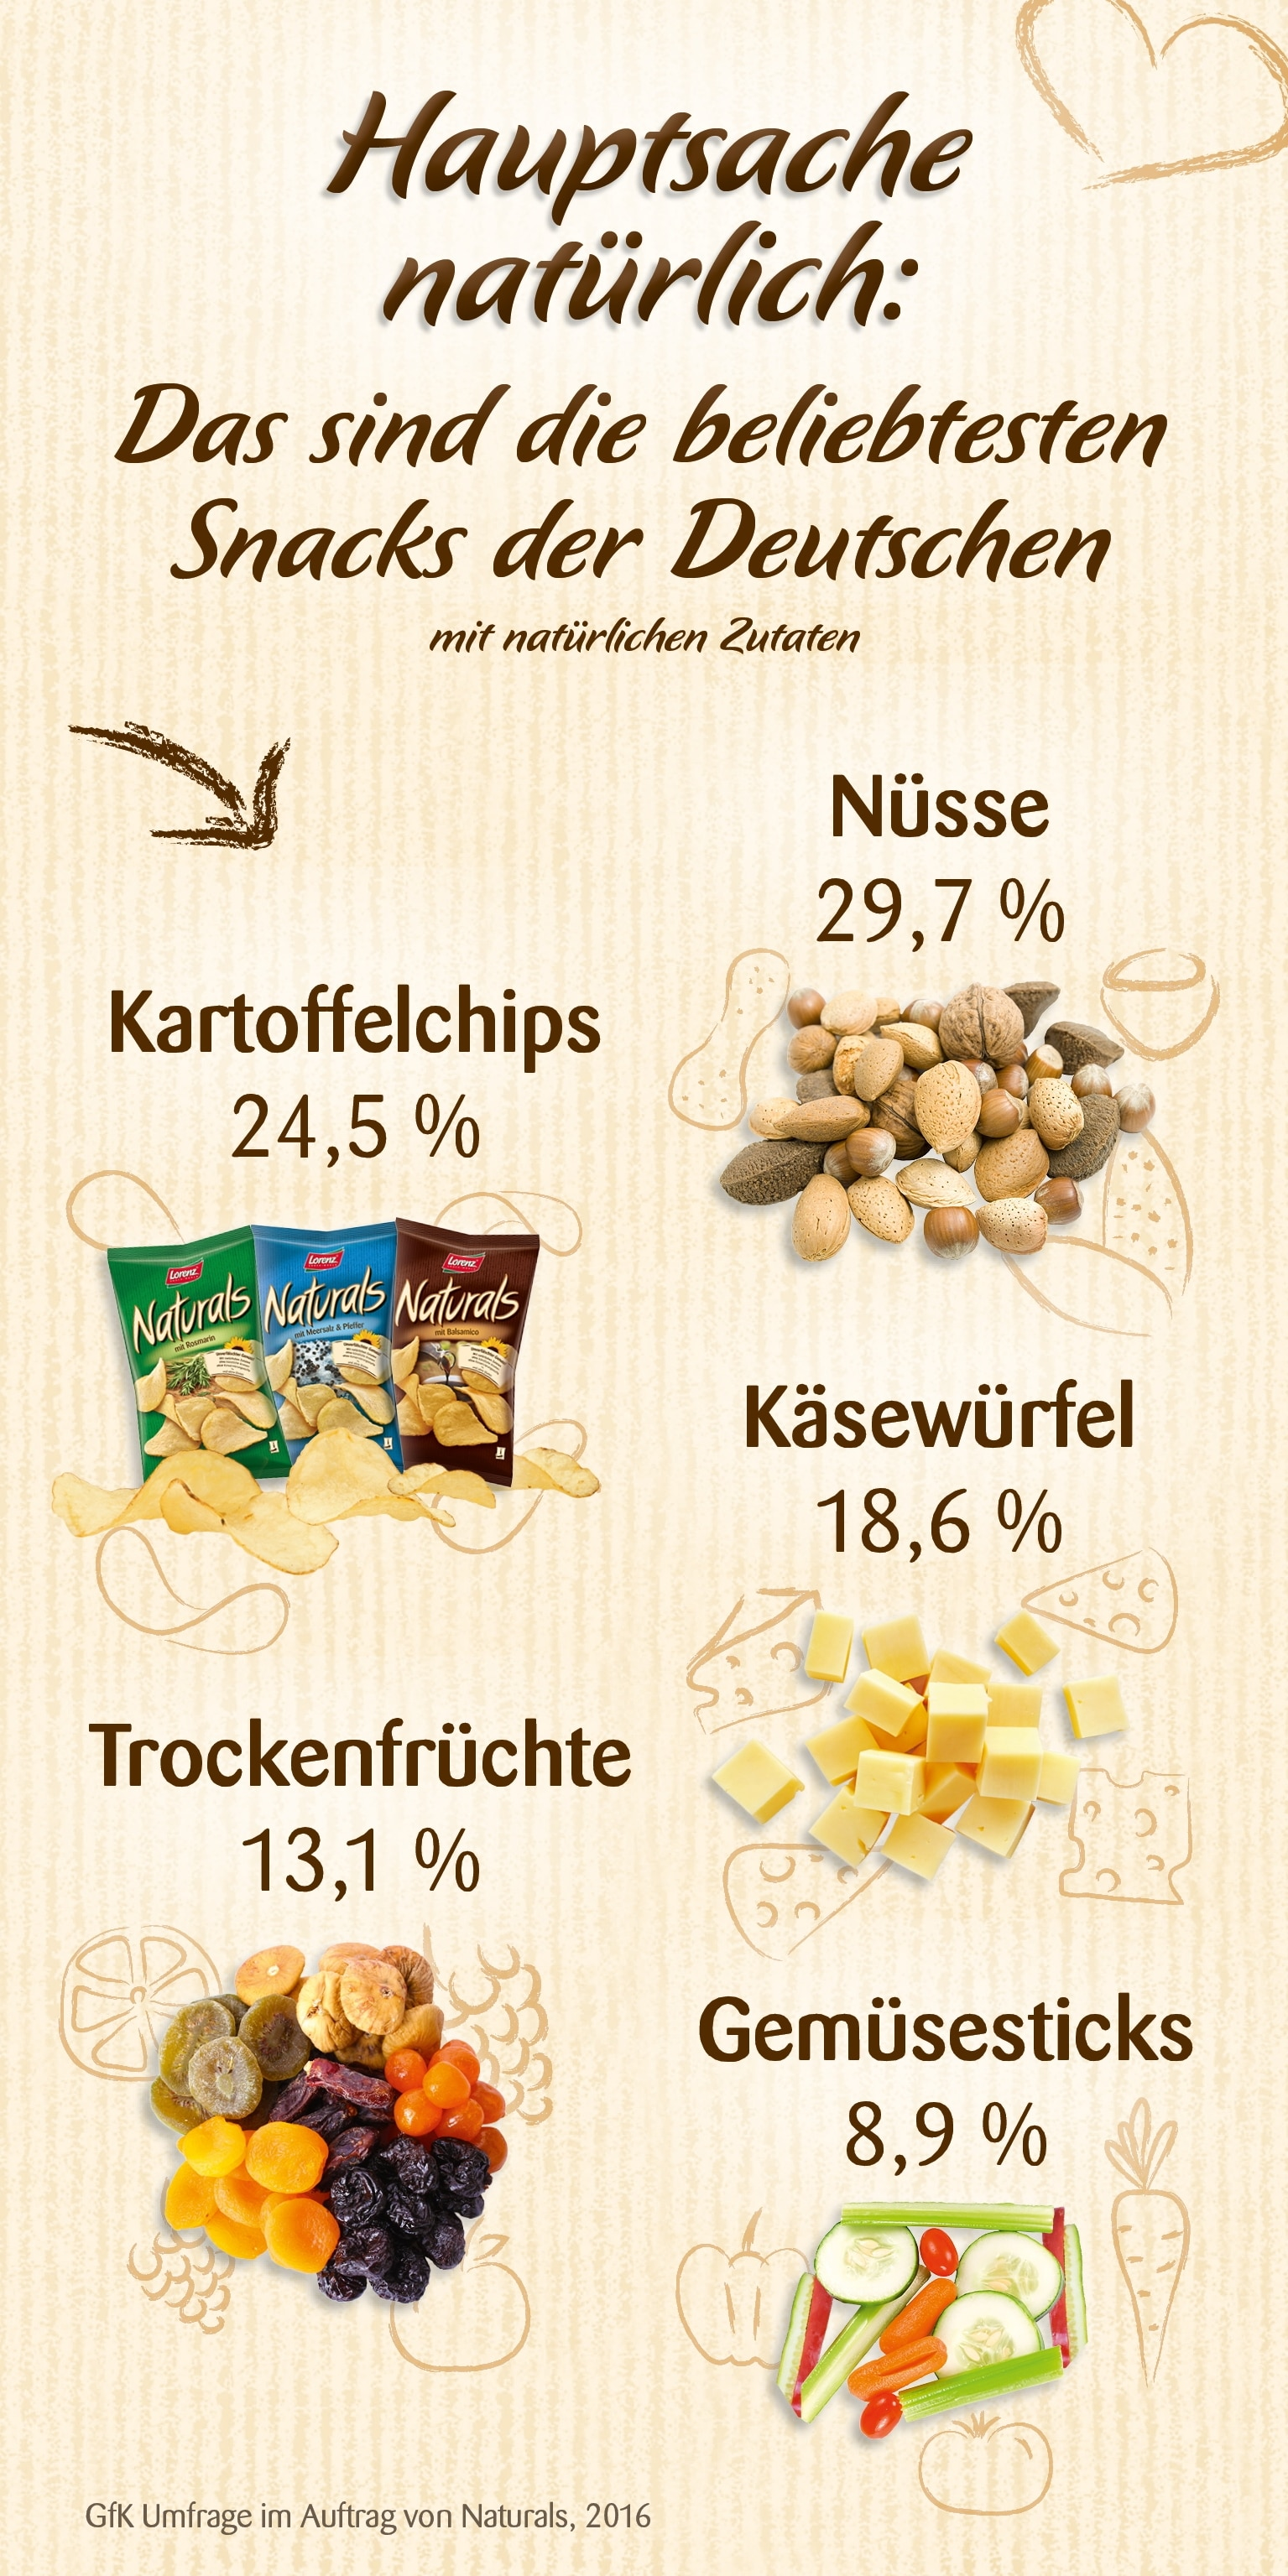 GfK-Umfrage: Hauptsache natüŸrlich - Das sind die beliebtesten Snacks der Deutschen mit natŸürlichen Zutaten - copyright: obs / The Lorenz Bahlsen Snack-World GmbH & Co KG Germany / Naturals GfK